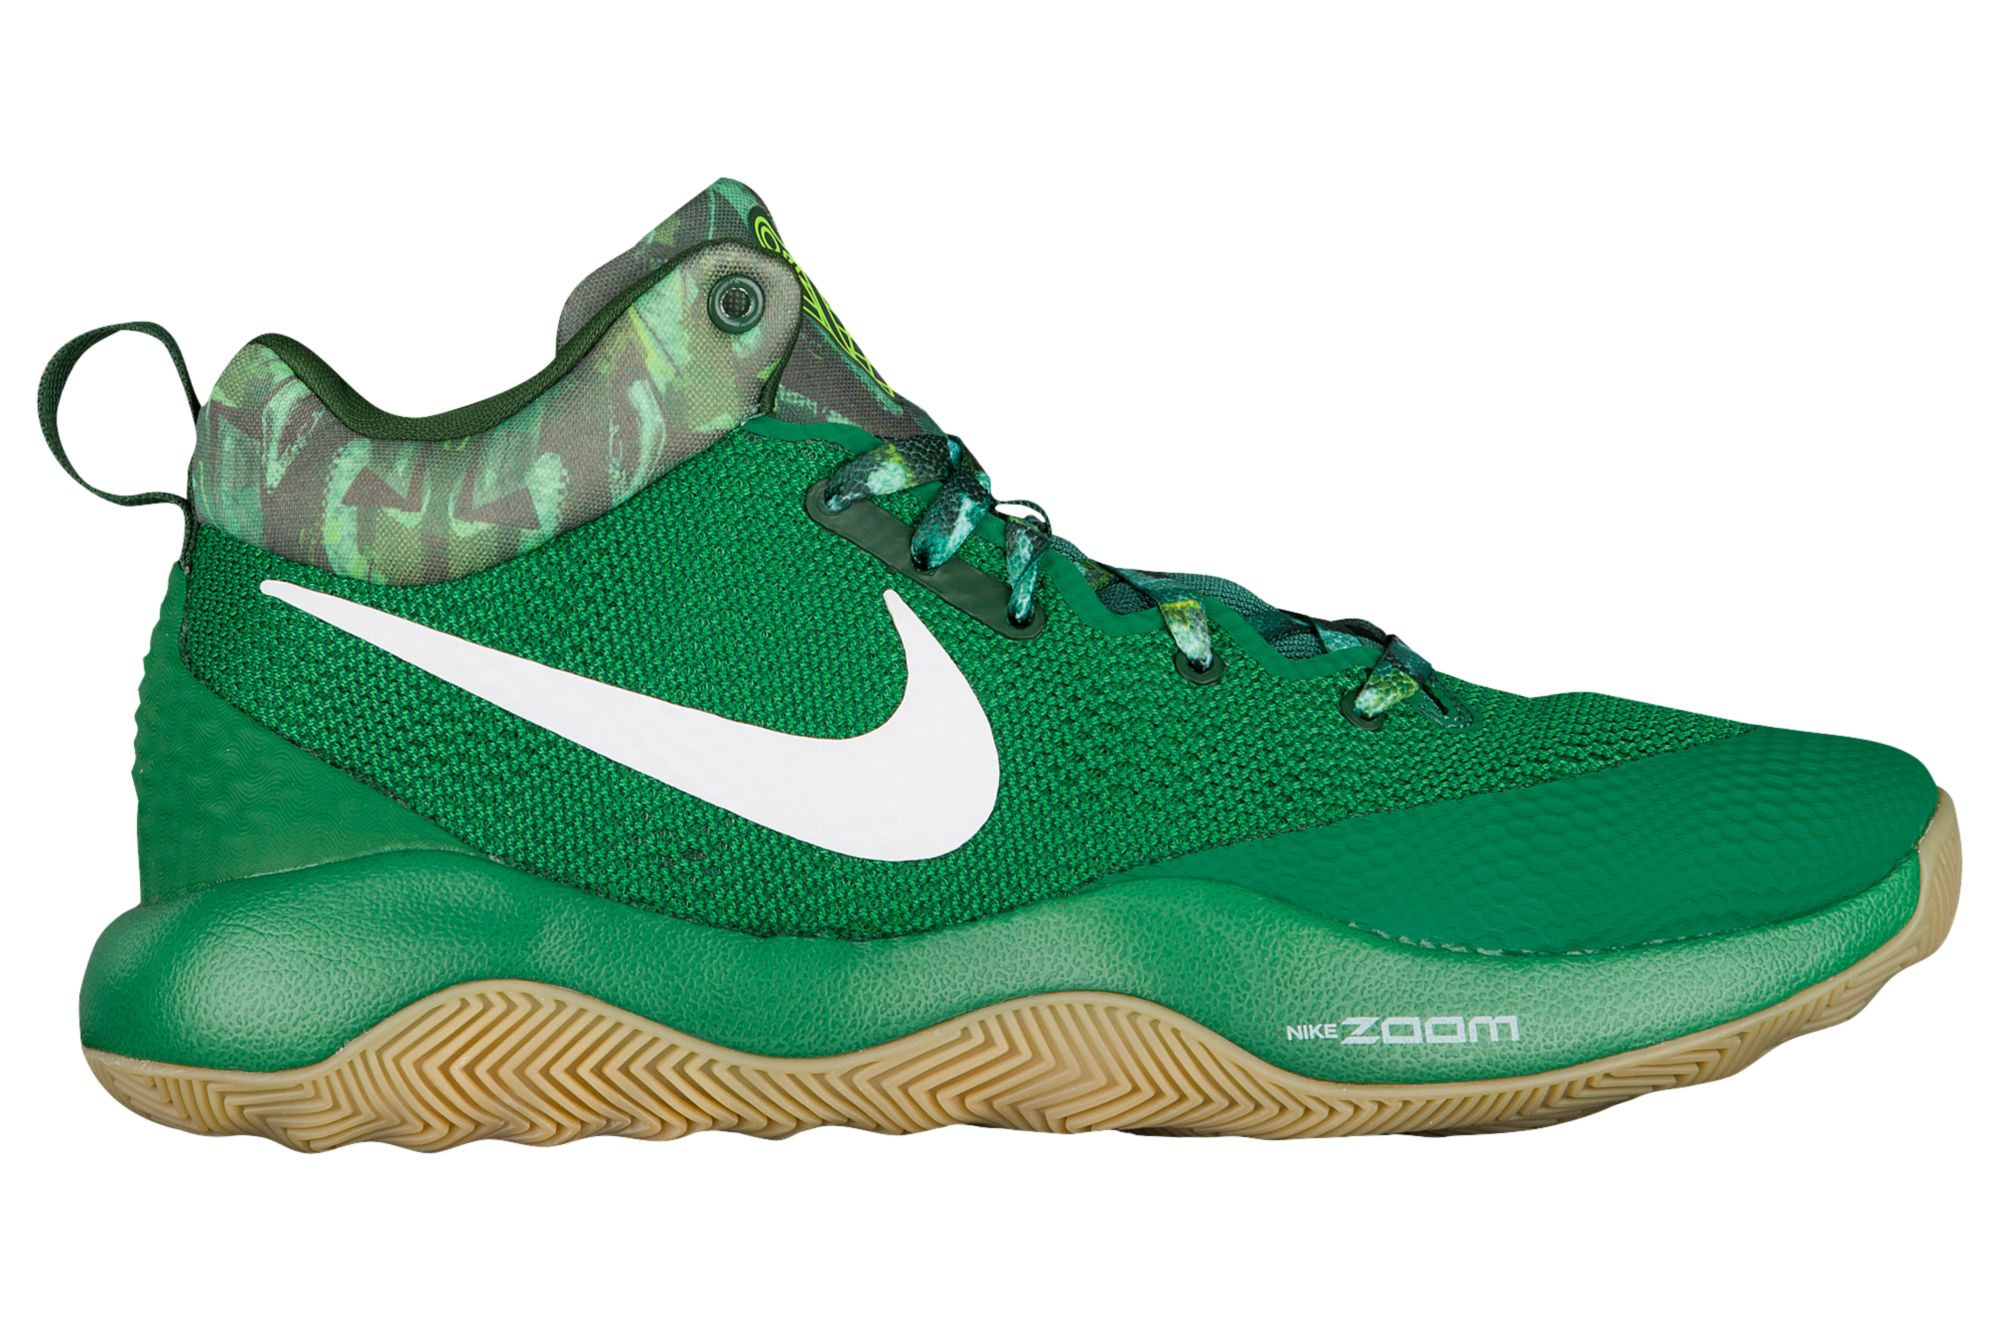 Nike Zoom rev - Pine Green - Side